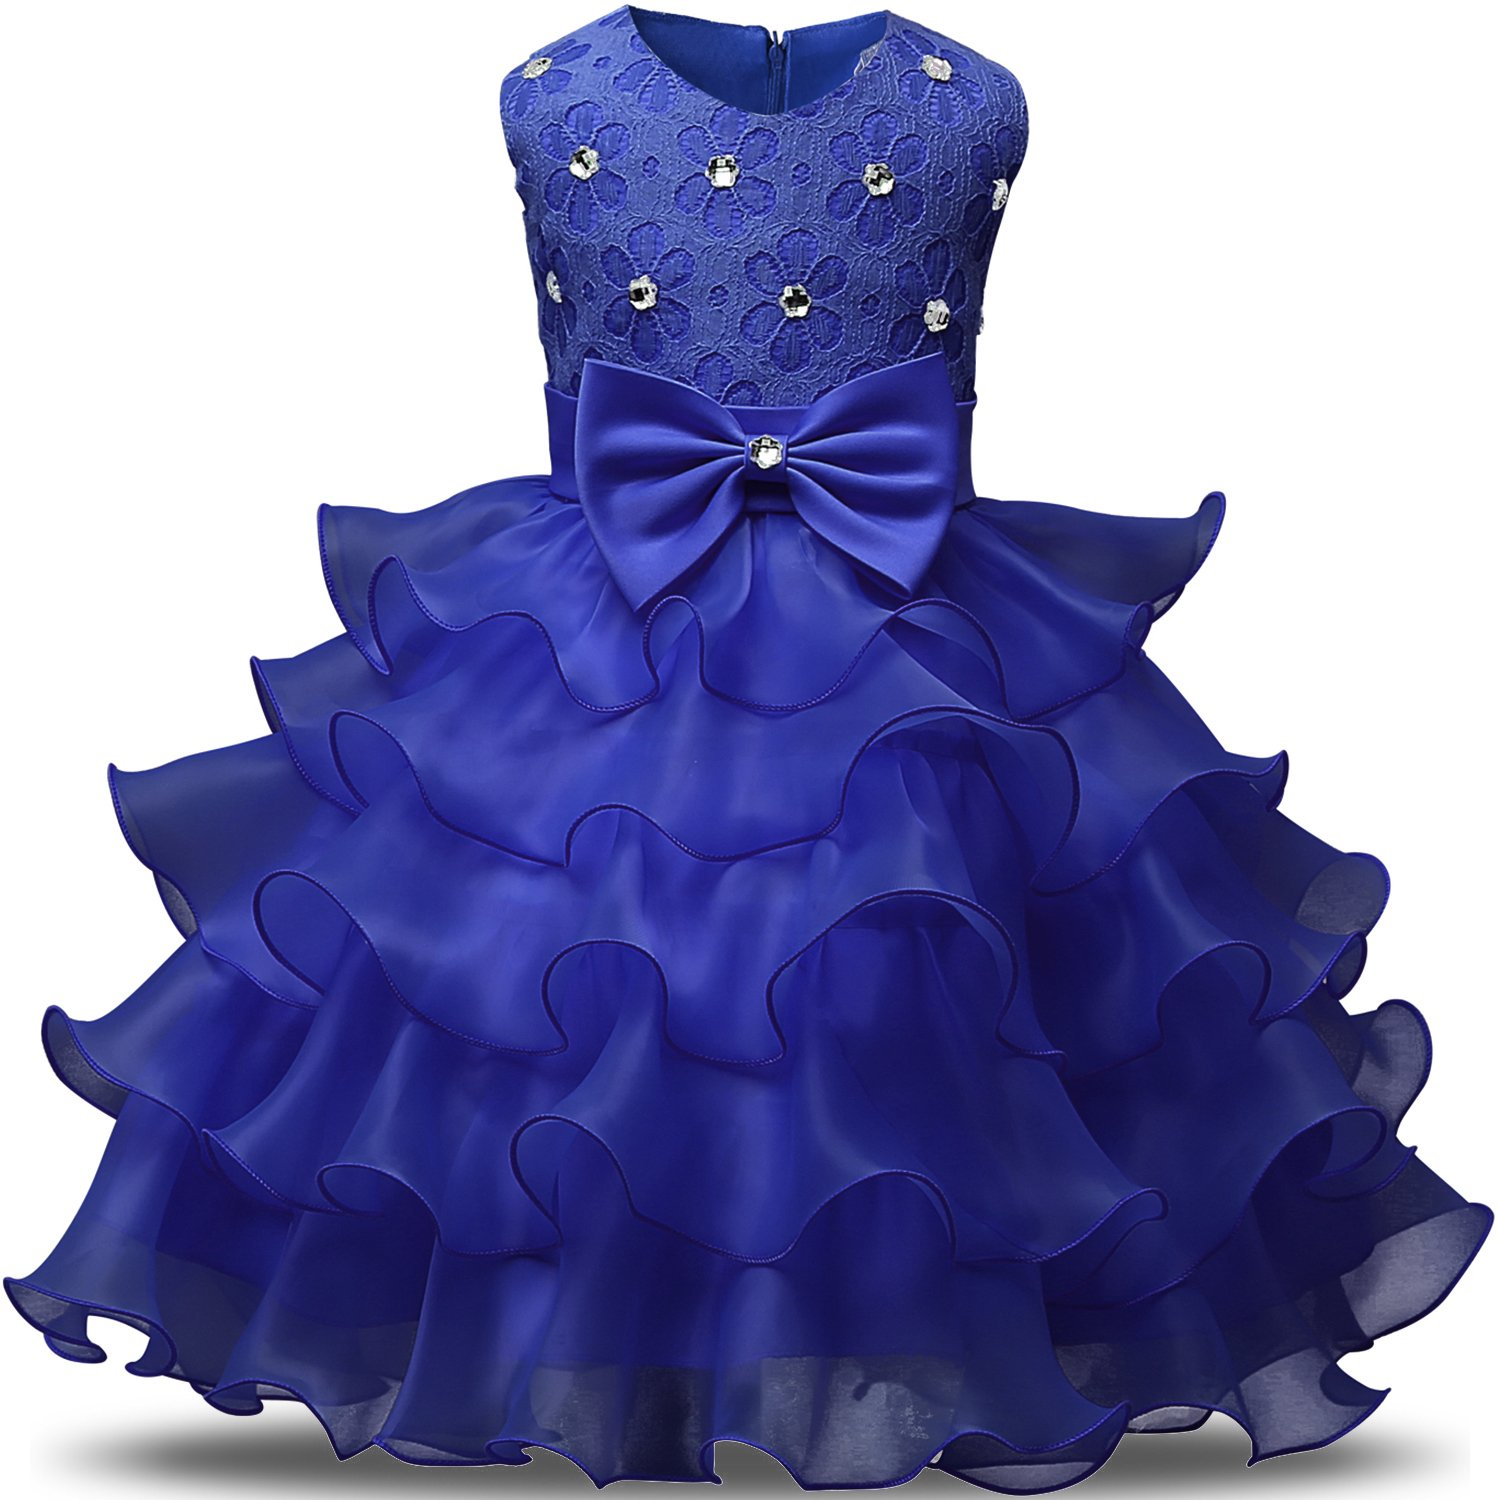 NNJXD Girl Dress Kids Ruffles Lace Party Wedding Dresses Size (120) 4-5 Years Blue